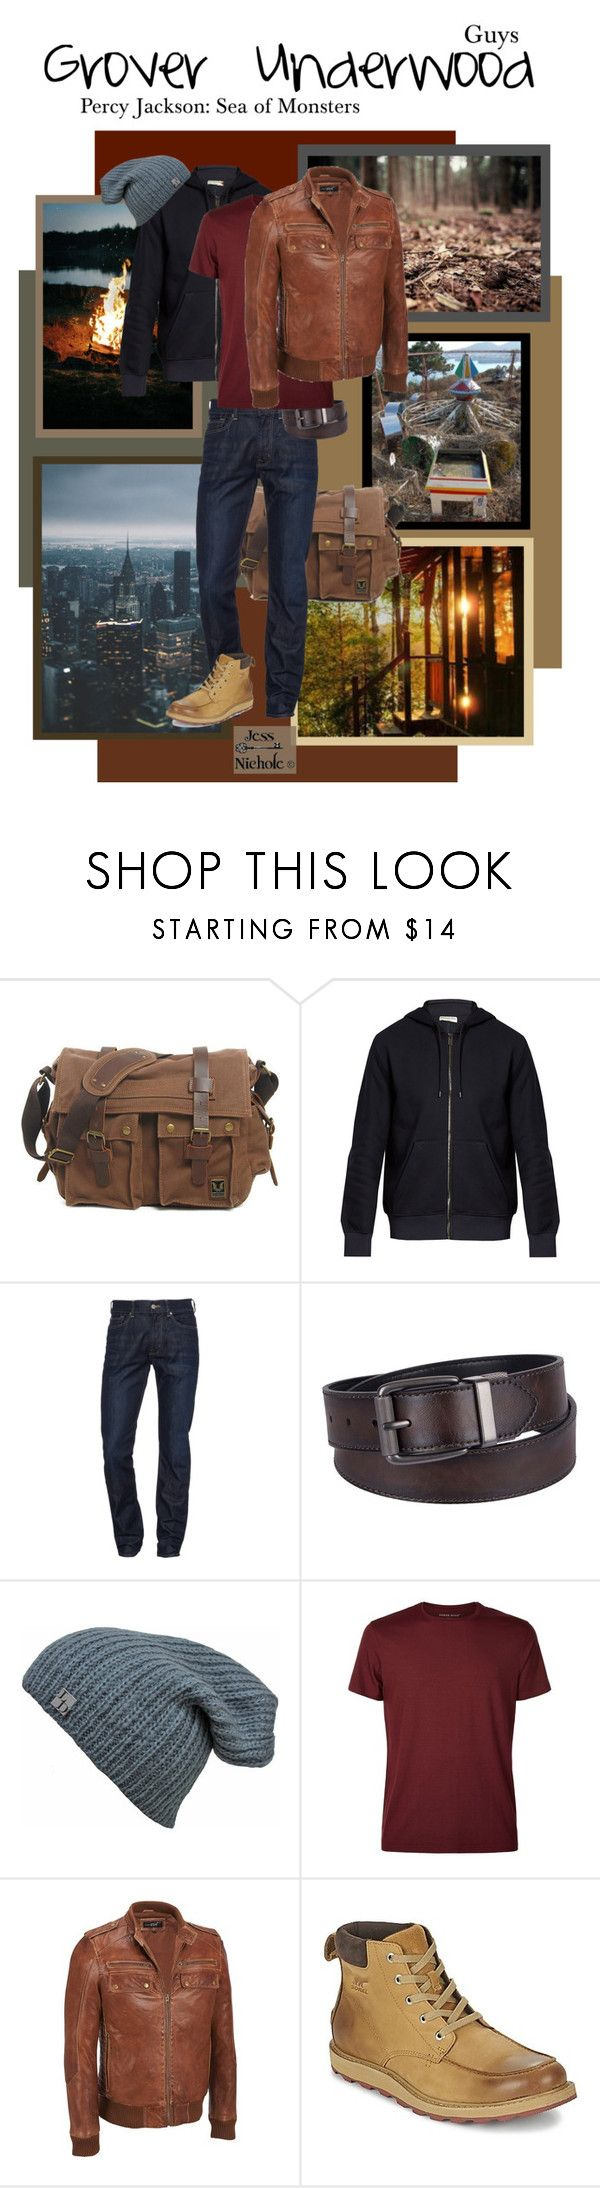 """Guys: Grover Underwood"" by jess-nichole ❤ liked on Polyvore featuring Balenciaga, 7 For All Mankind, Urban Pipeline, Derek Rose, SOREL, men's fashion and menswear"